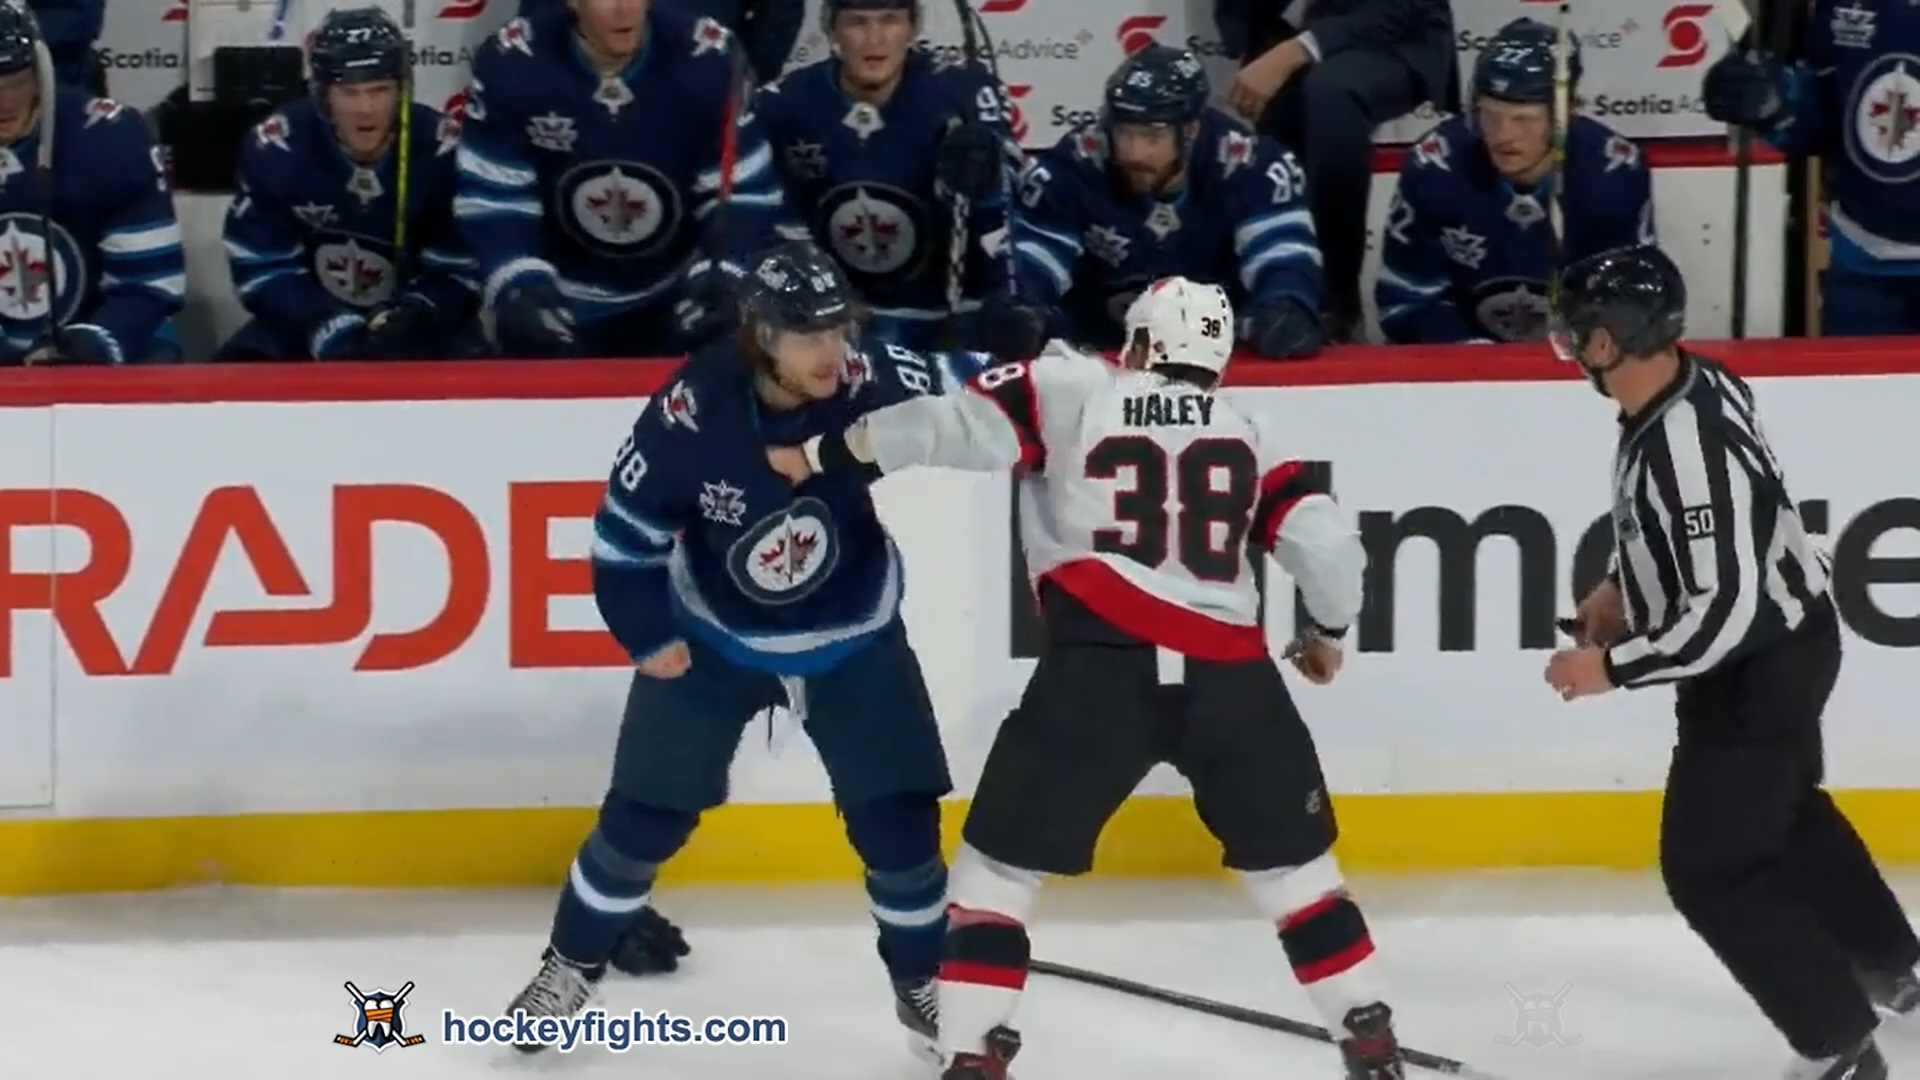 Nathan Beaulieu vs. Micheal Haley